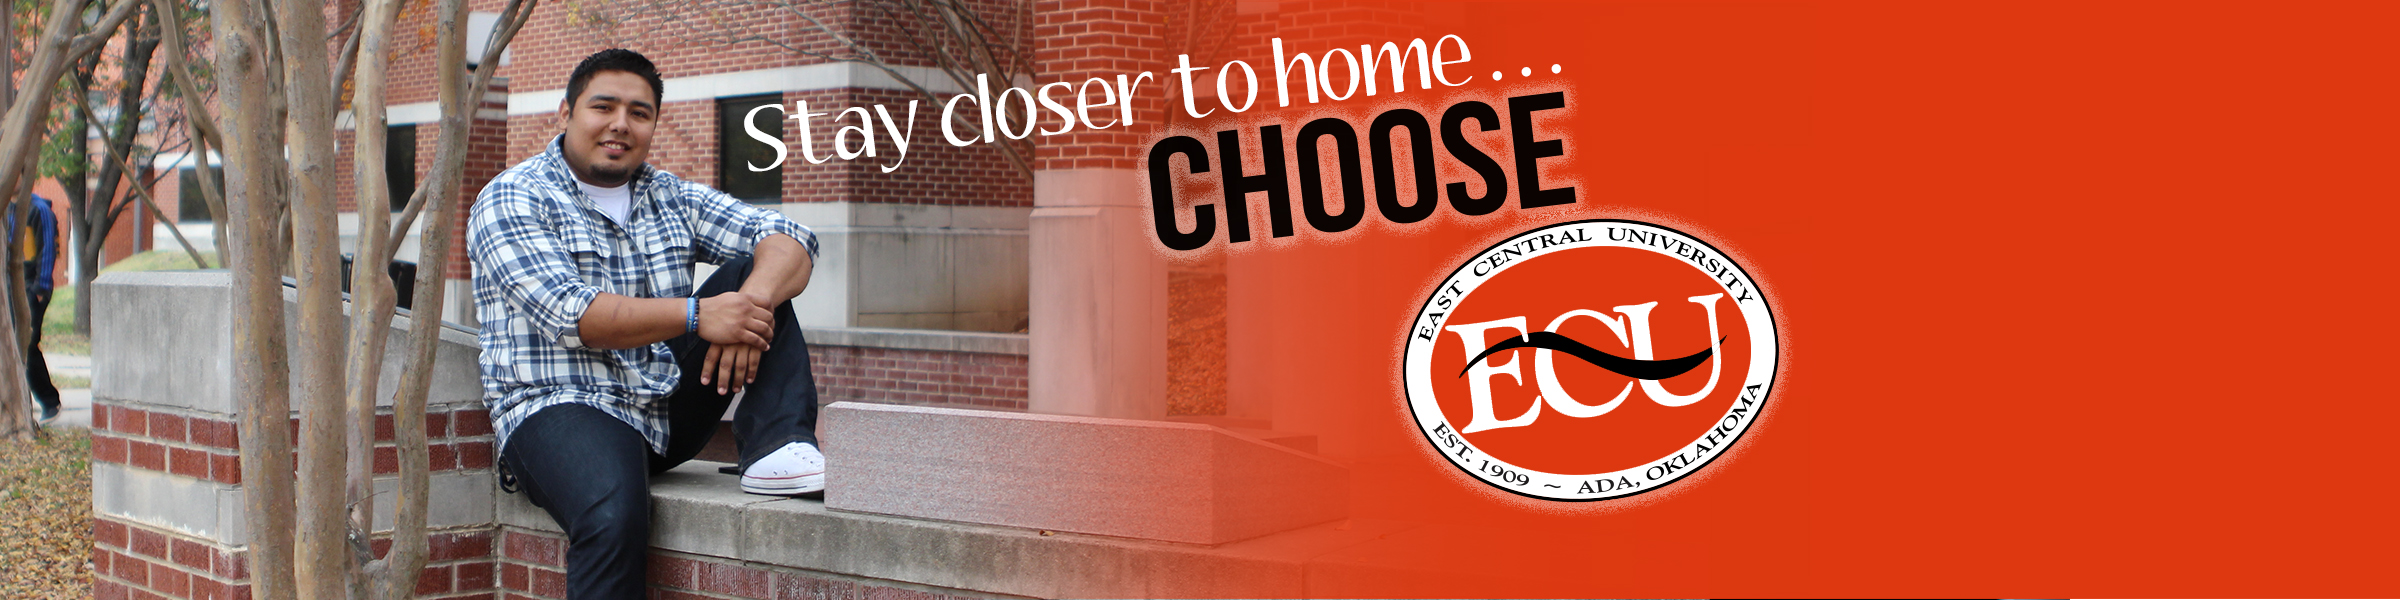 Stay closer to home header